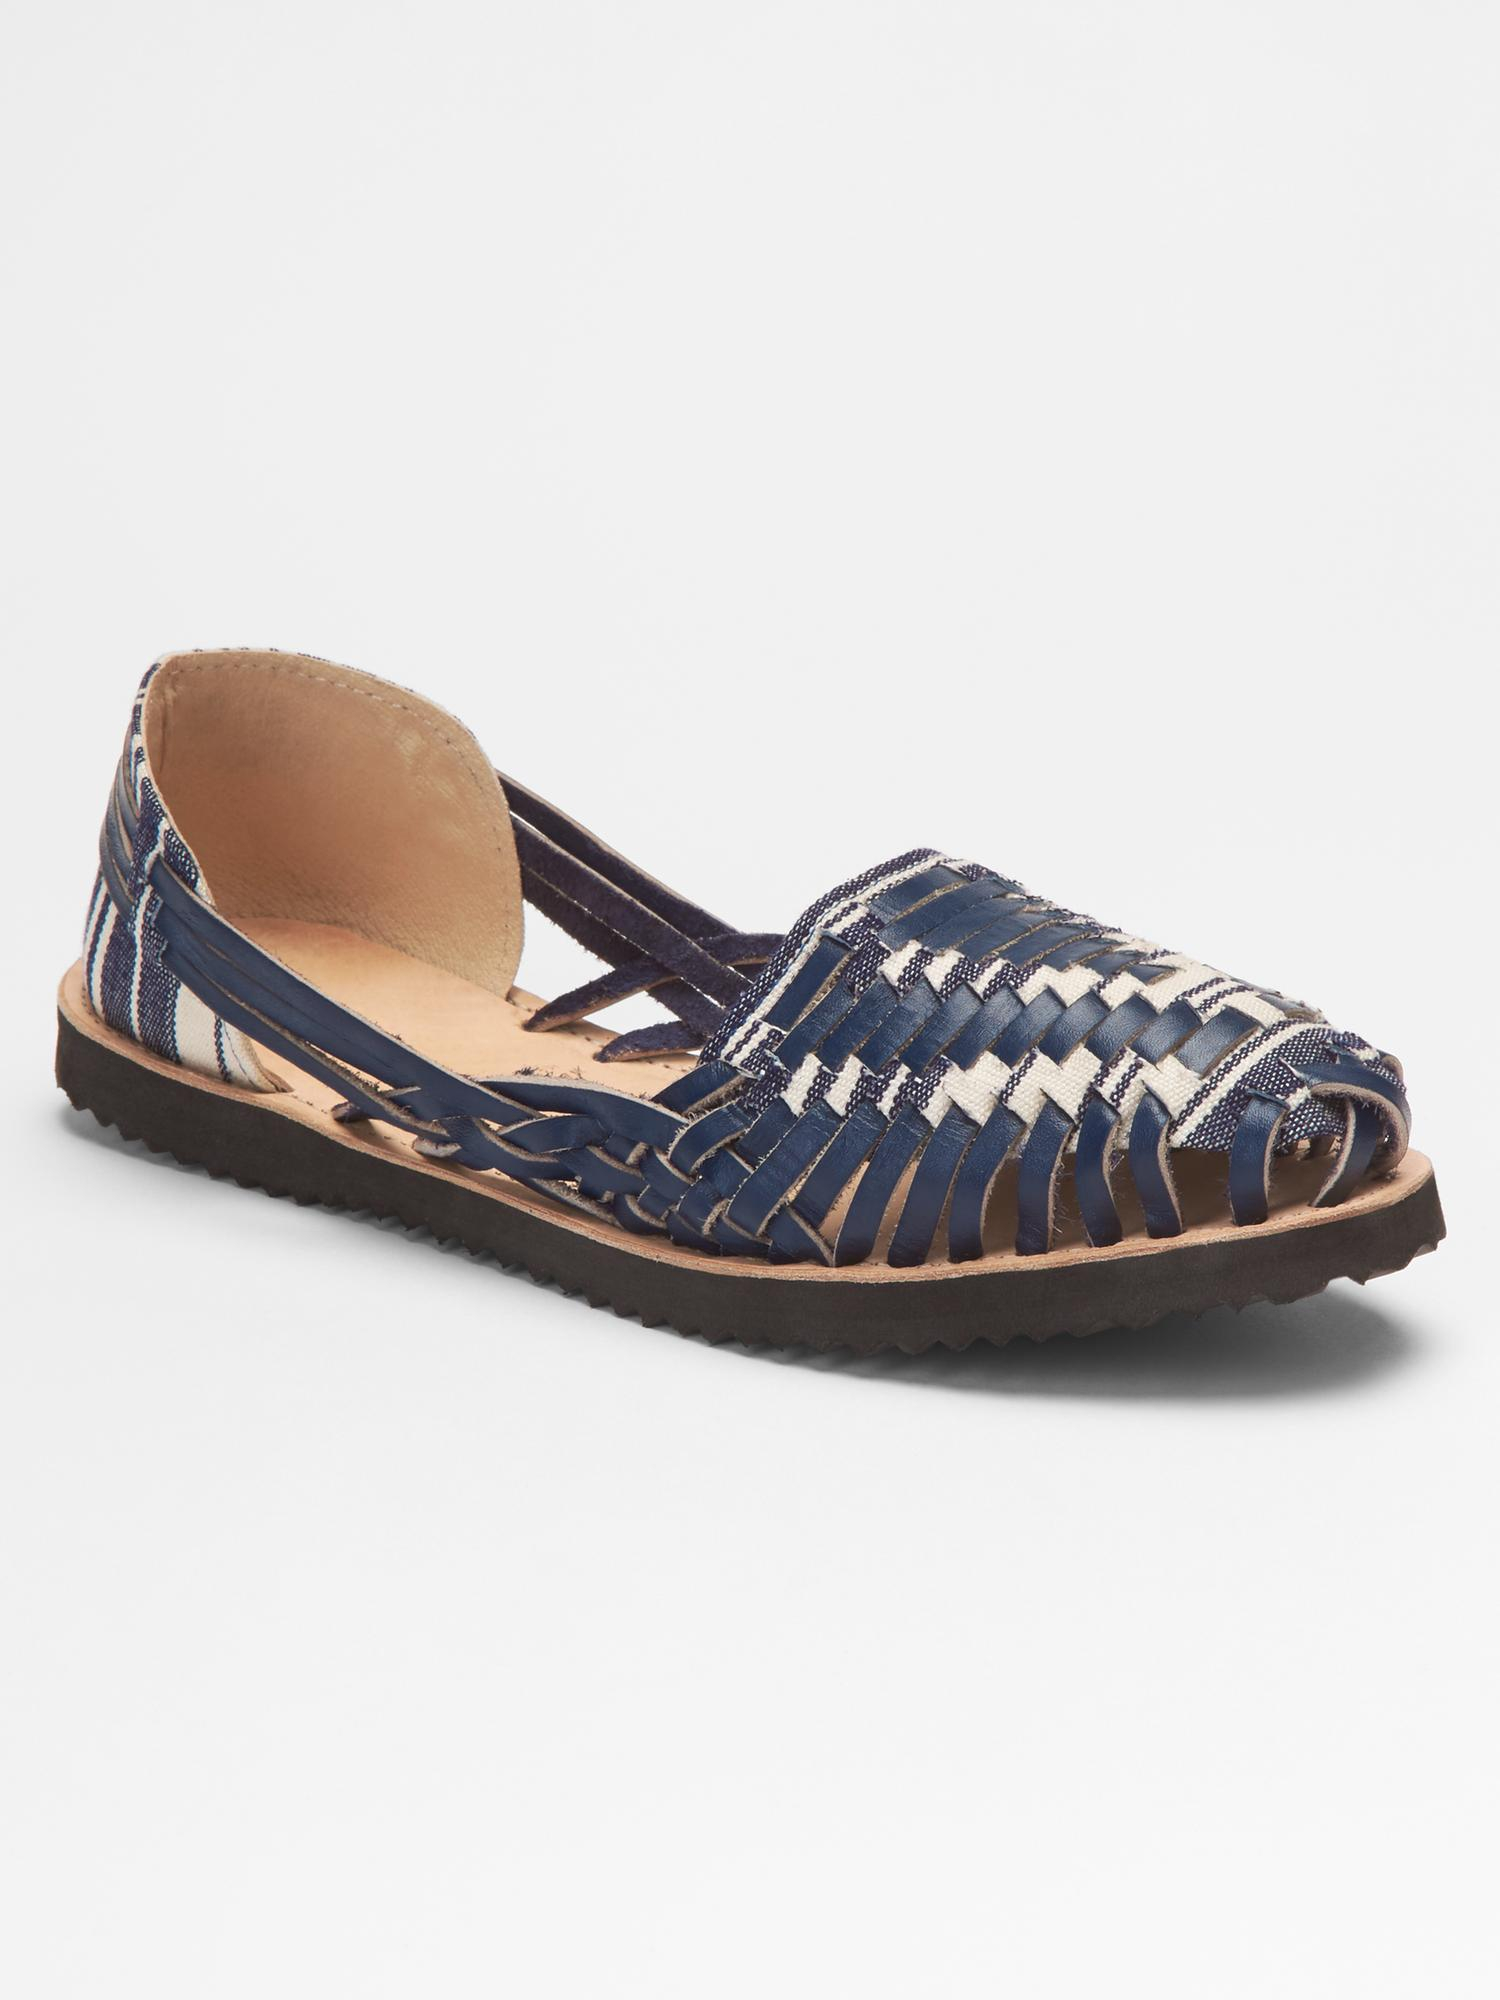 Fantastic Sandals  Gap  SHOES  Pinterest  Products Gap And Womens